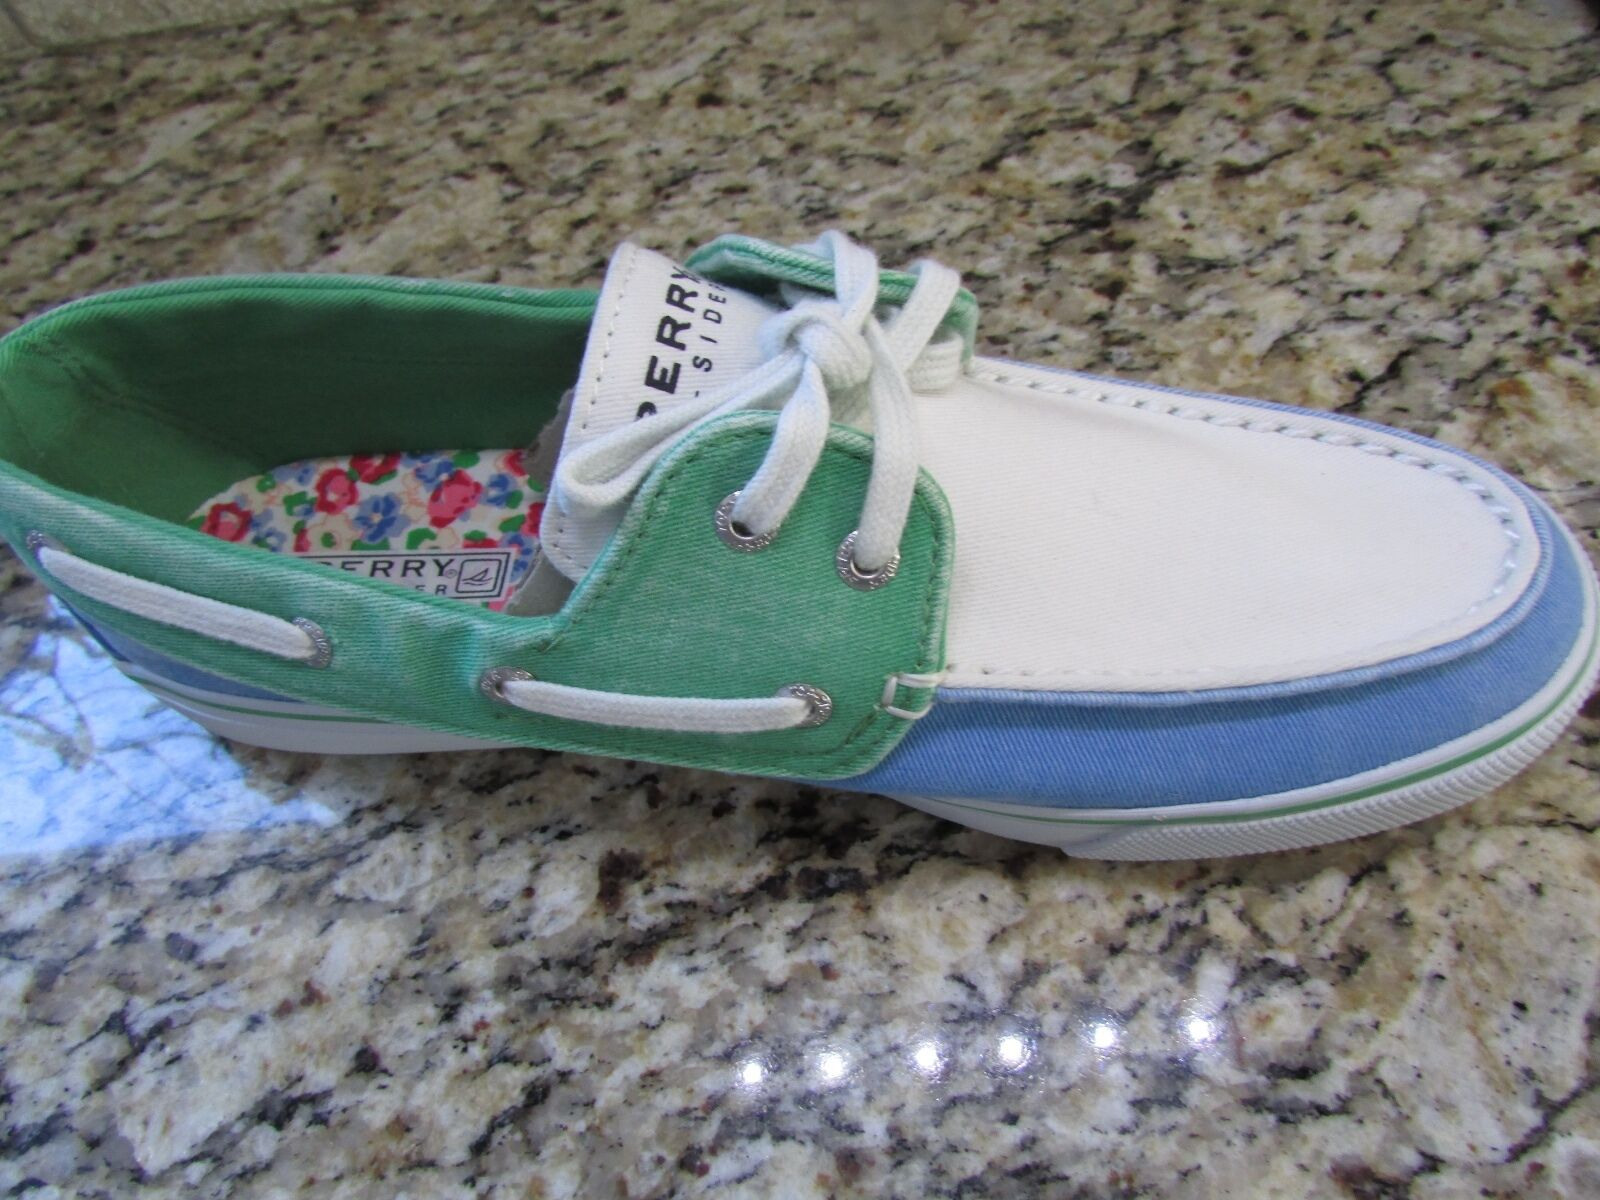 NEW SPERRY TOP-SIDER BISCAYNE BOAT SHOES Donna 9.5 BLUE GREEN  FREE SHIP